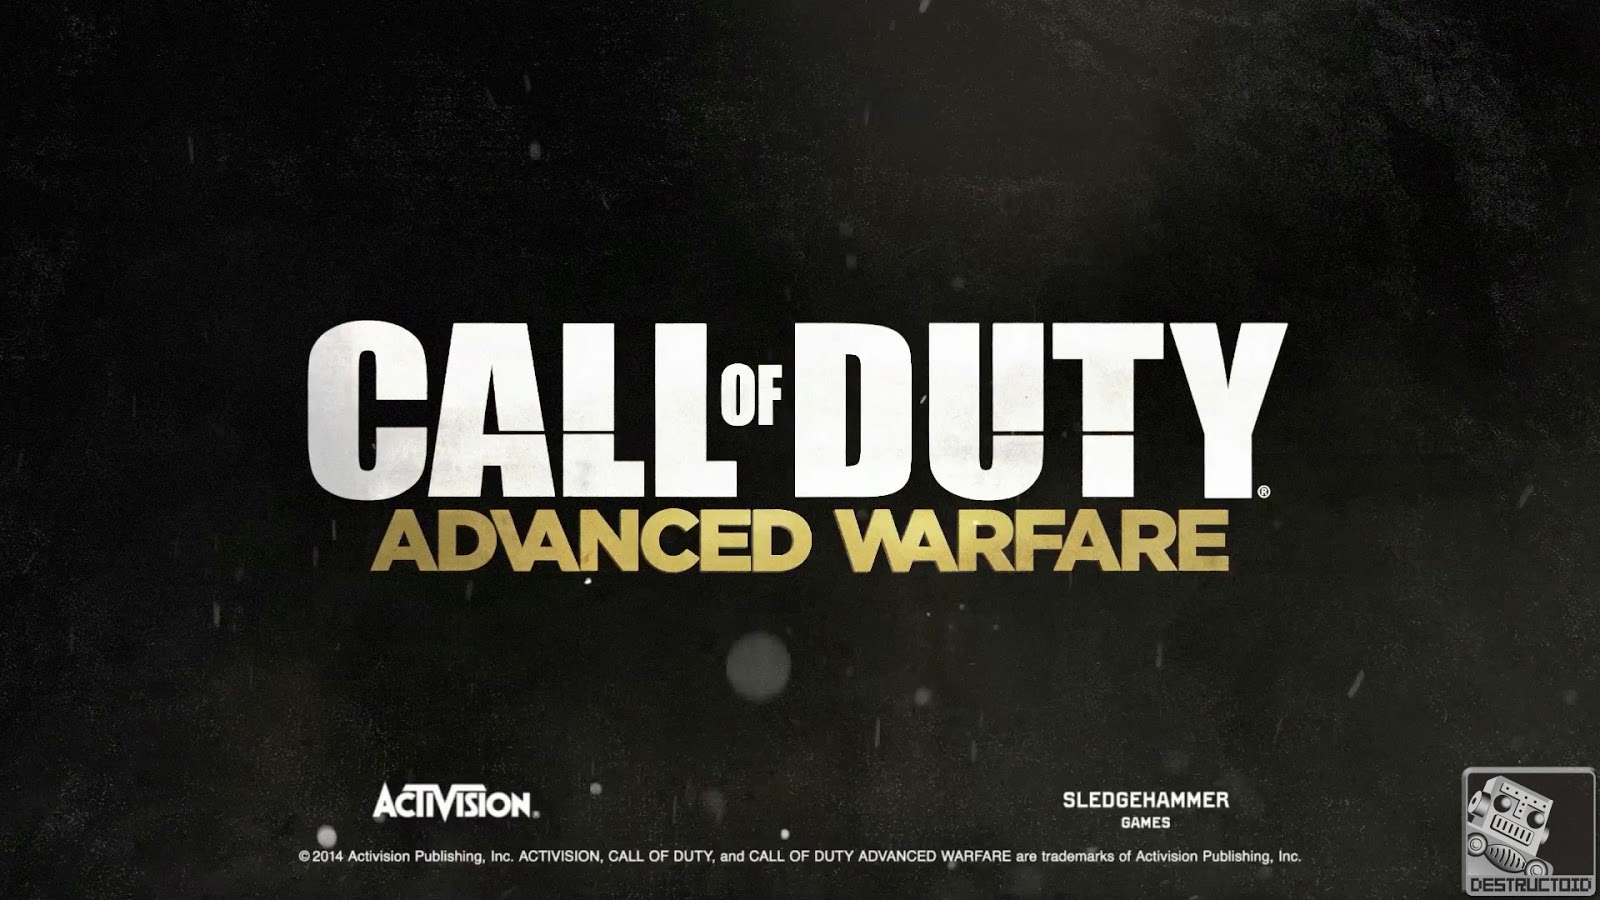 http://comunidade-callofduty.blogspot.com/2014/05/novo-call-of-duty-se-chamara-call-of.html